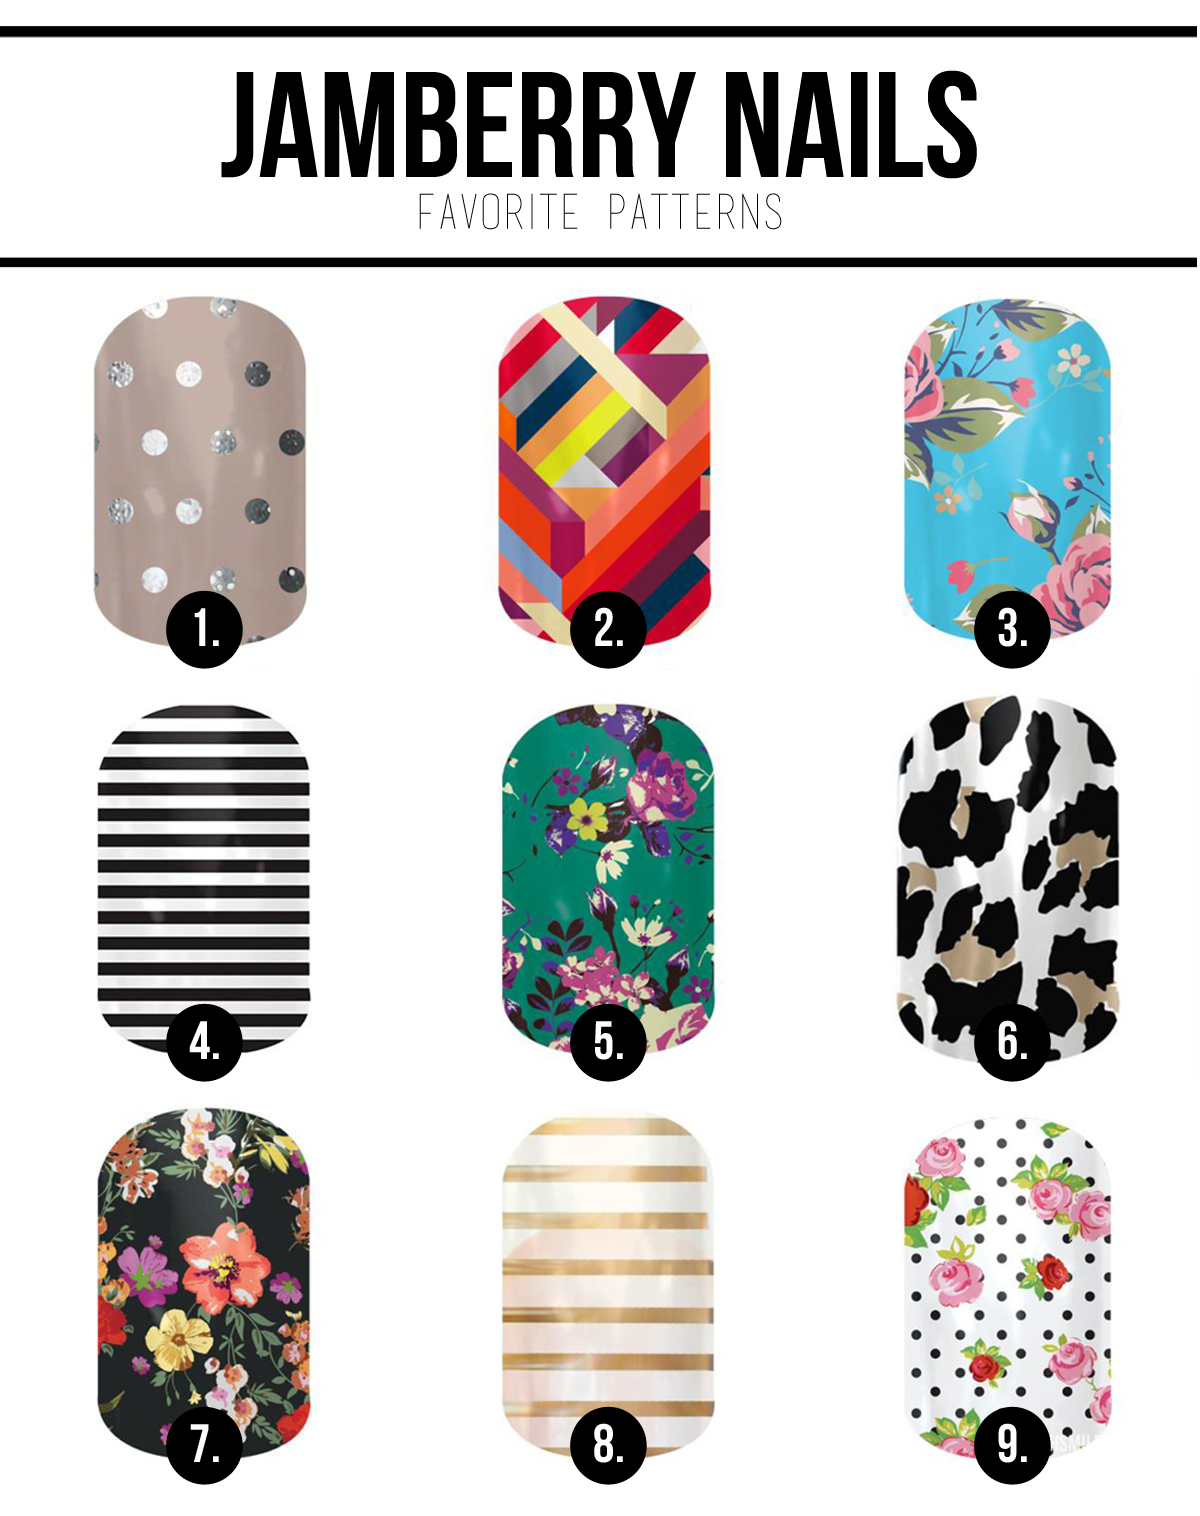 jamberry-nails-patterns.png